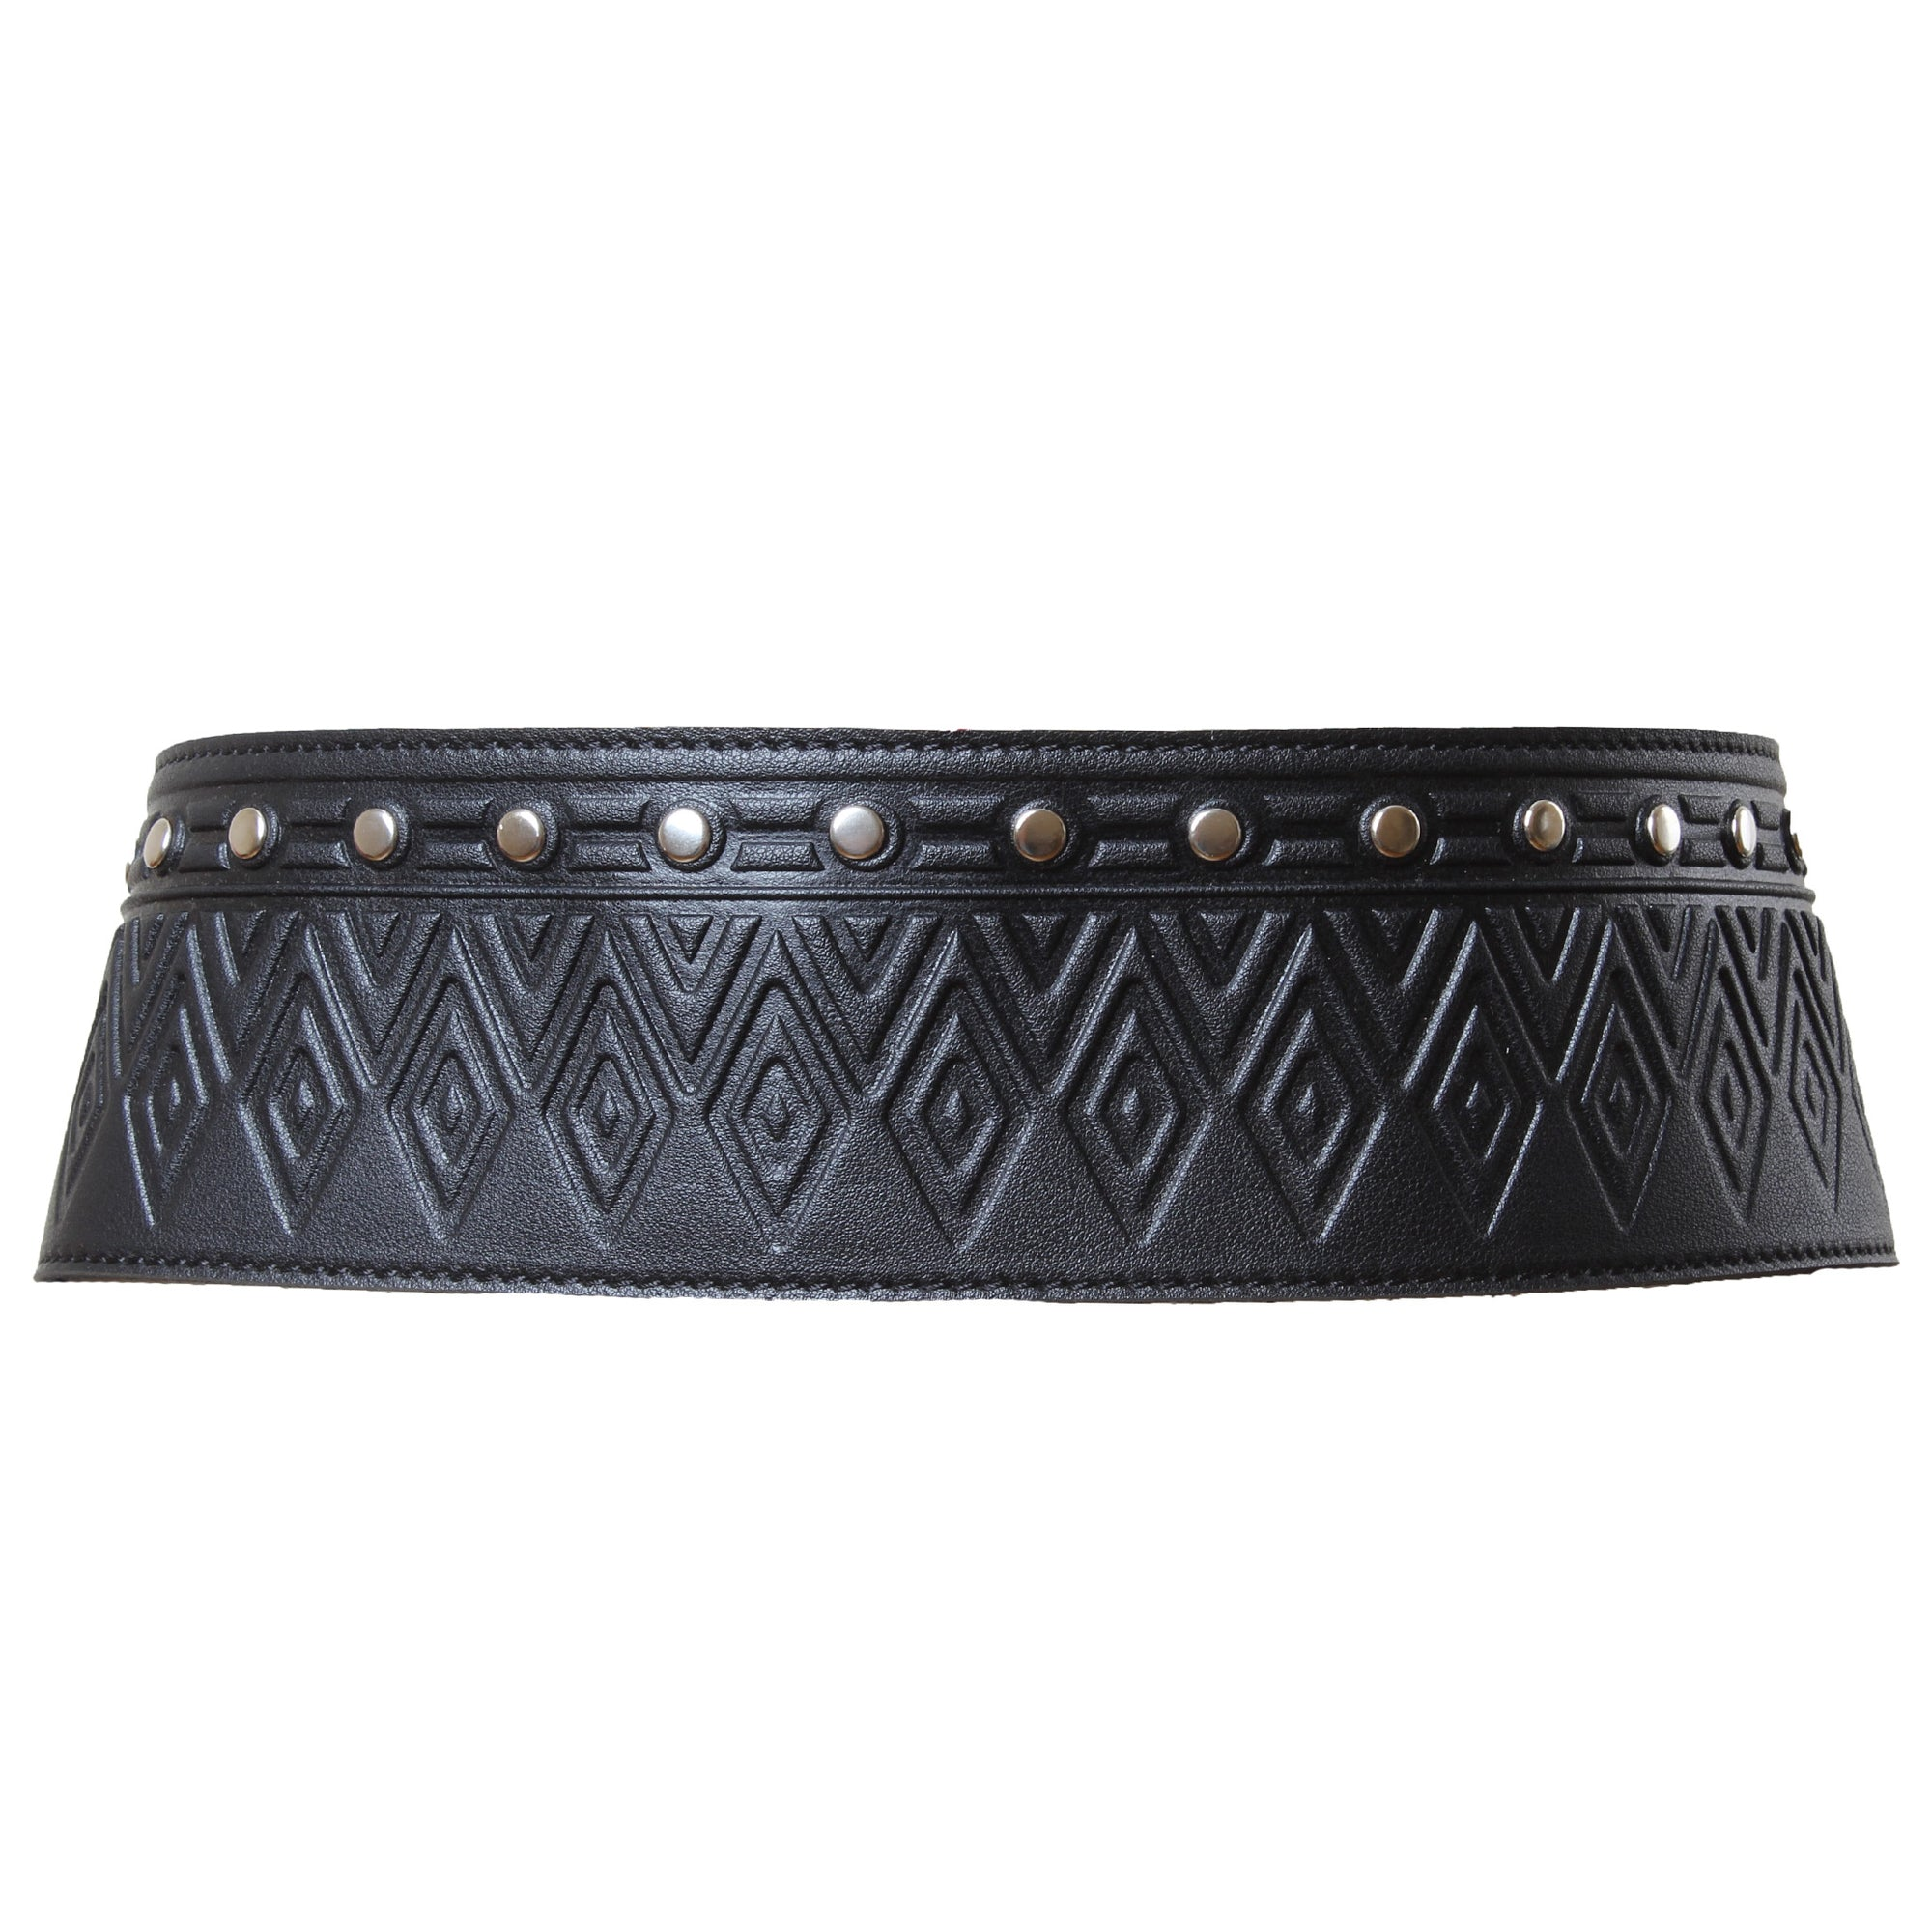 Tangle Belt Black